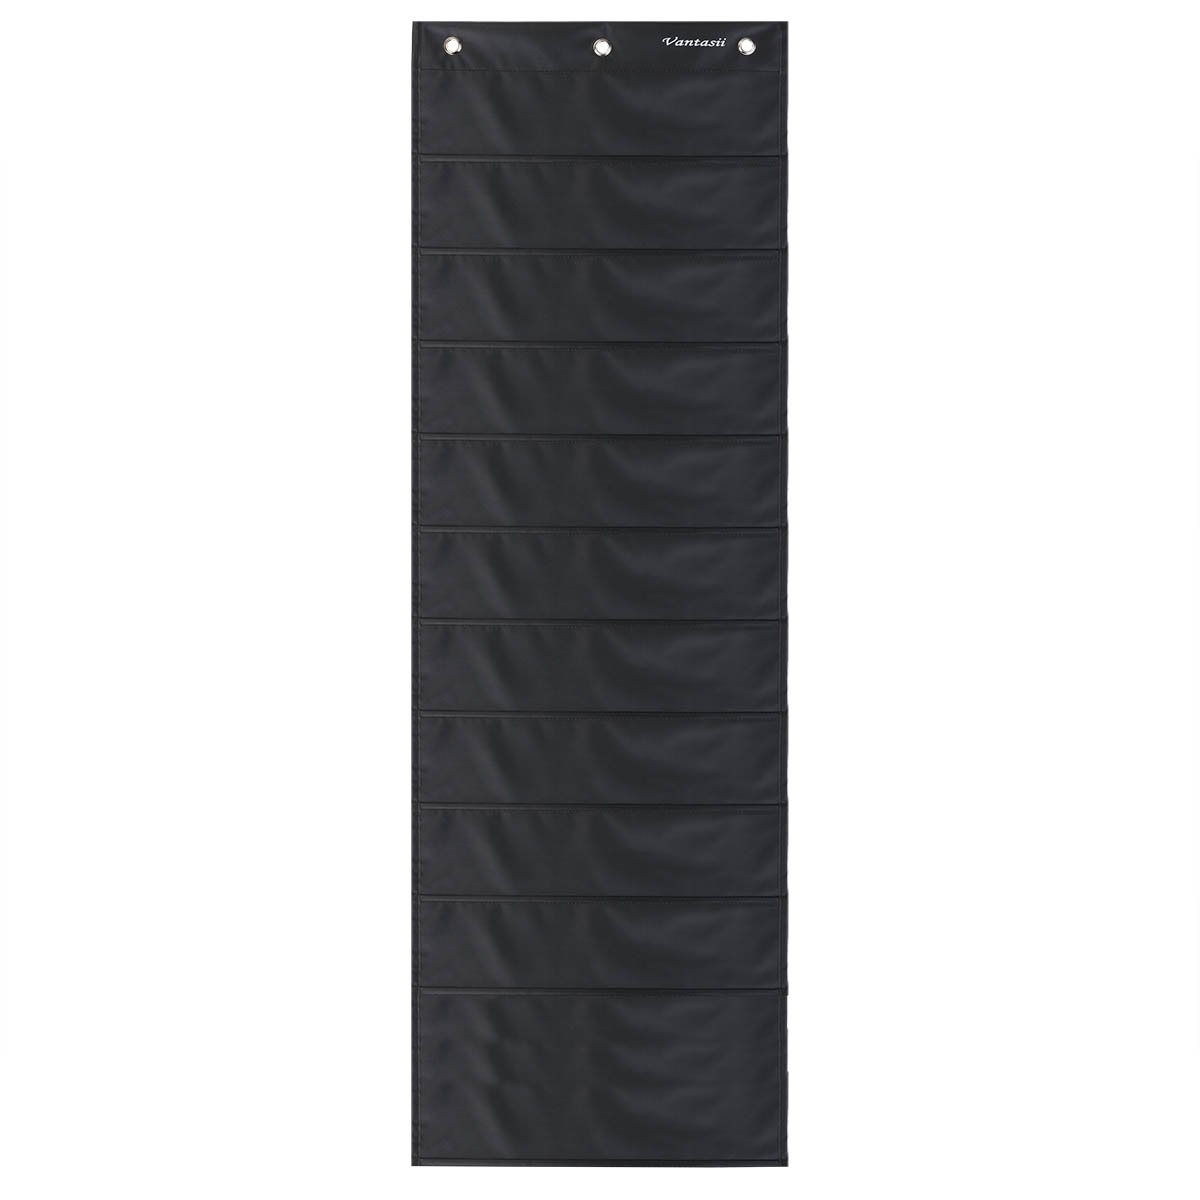 2 Pack Storage Pocket Chart, Wall hanging File Organizer Folder with 10 large Pockets for Office, Home, School, Studio, etc. 14 X 47 inch, BLACK, Mountings included. by Vantasii (Image #1)